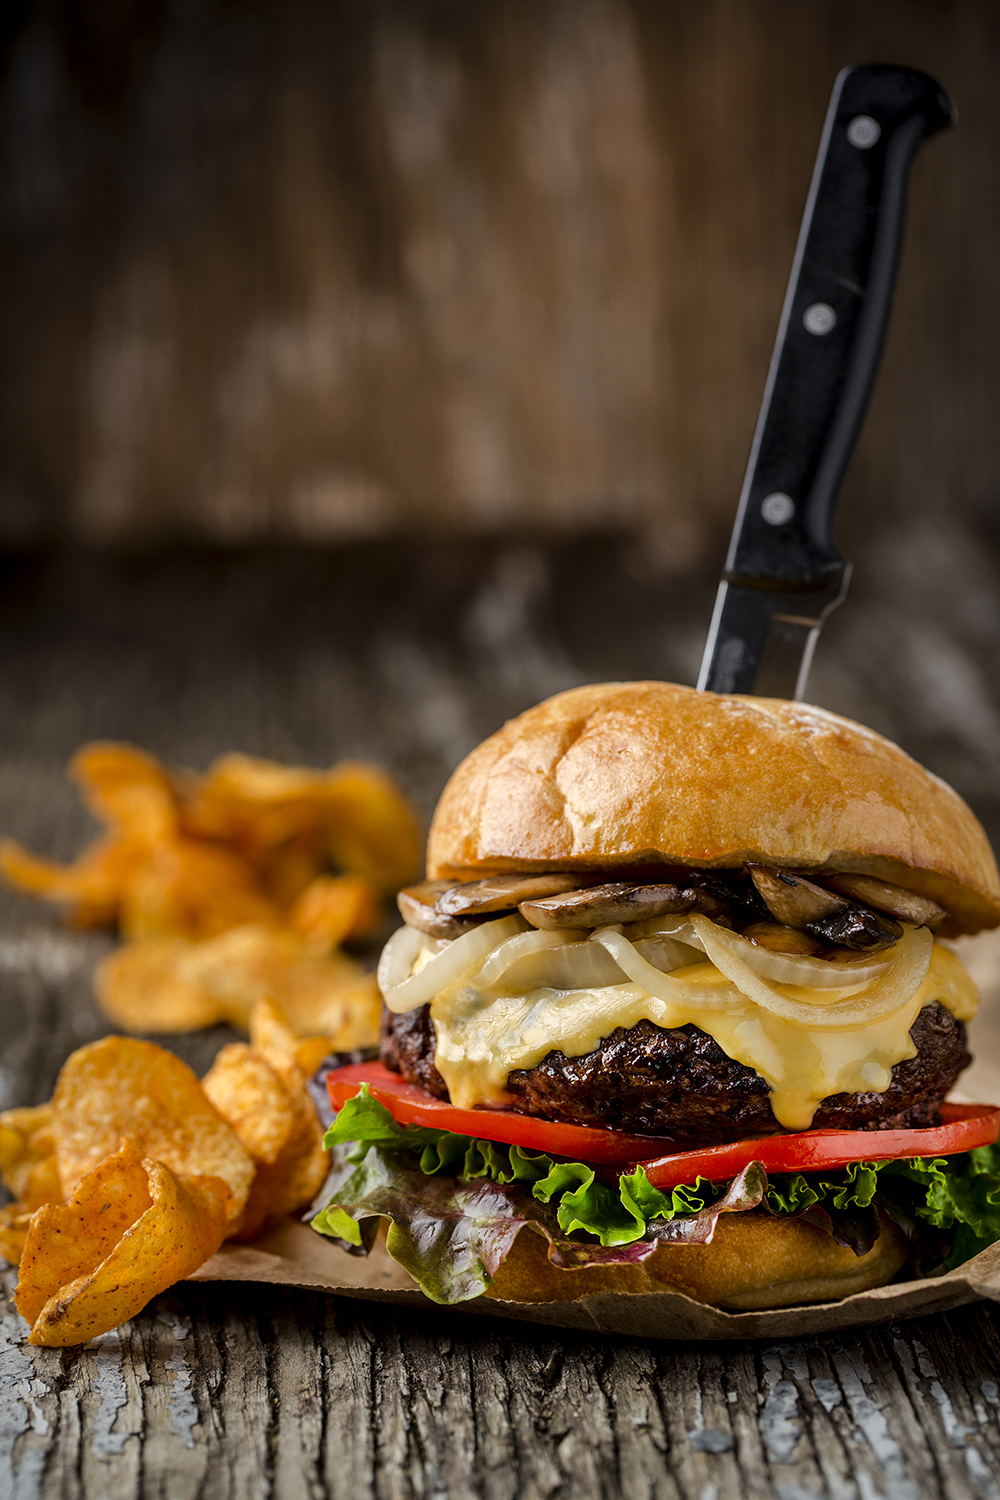 One pound cheeseburger with sauteed mushrooms and caramelized onions. Served with chips.